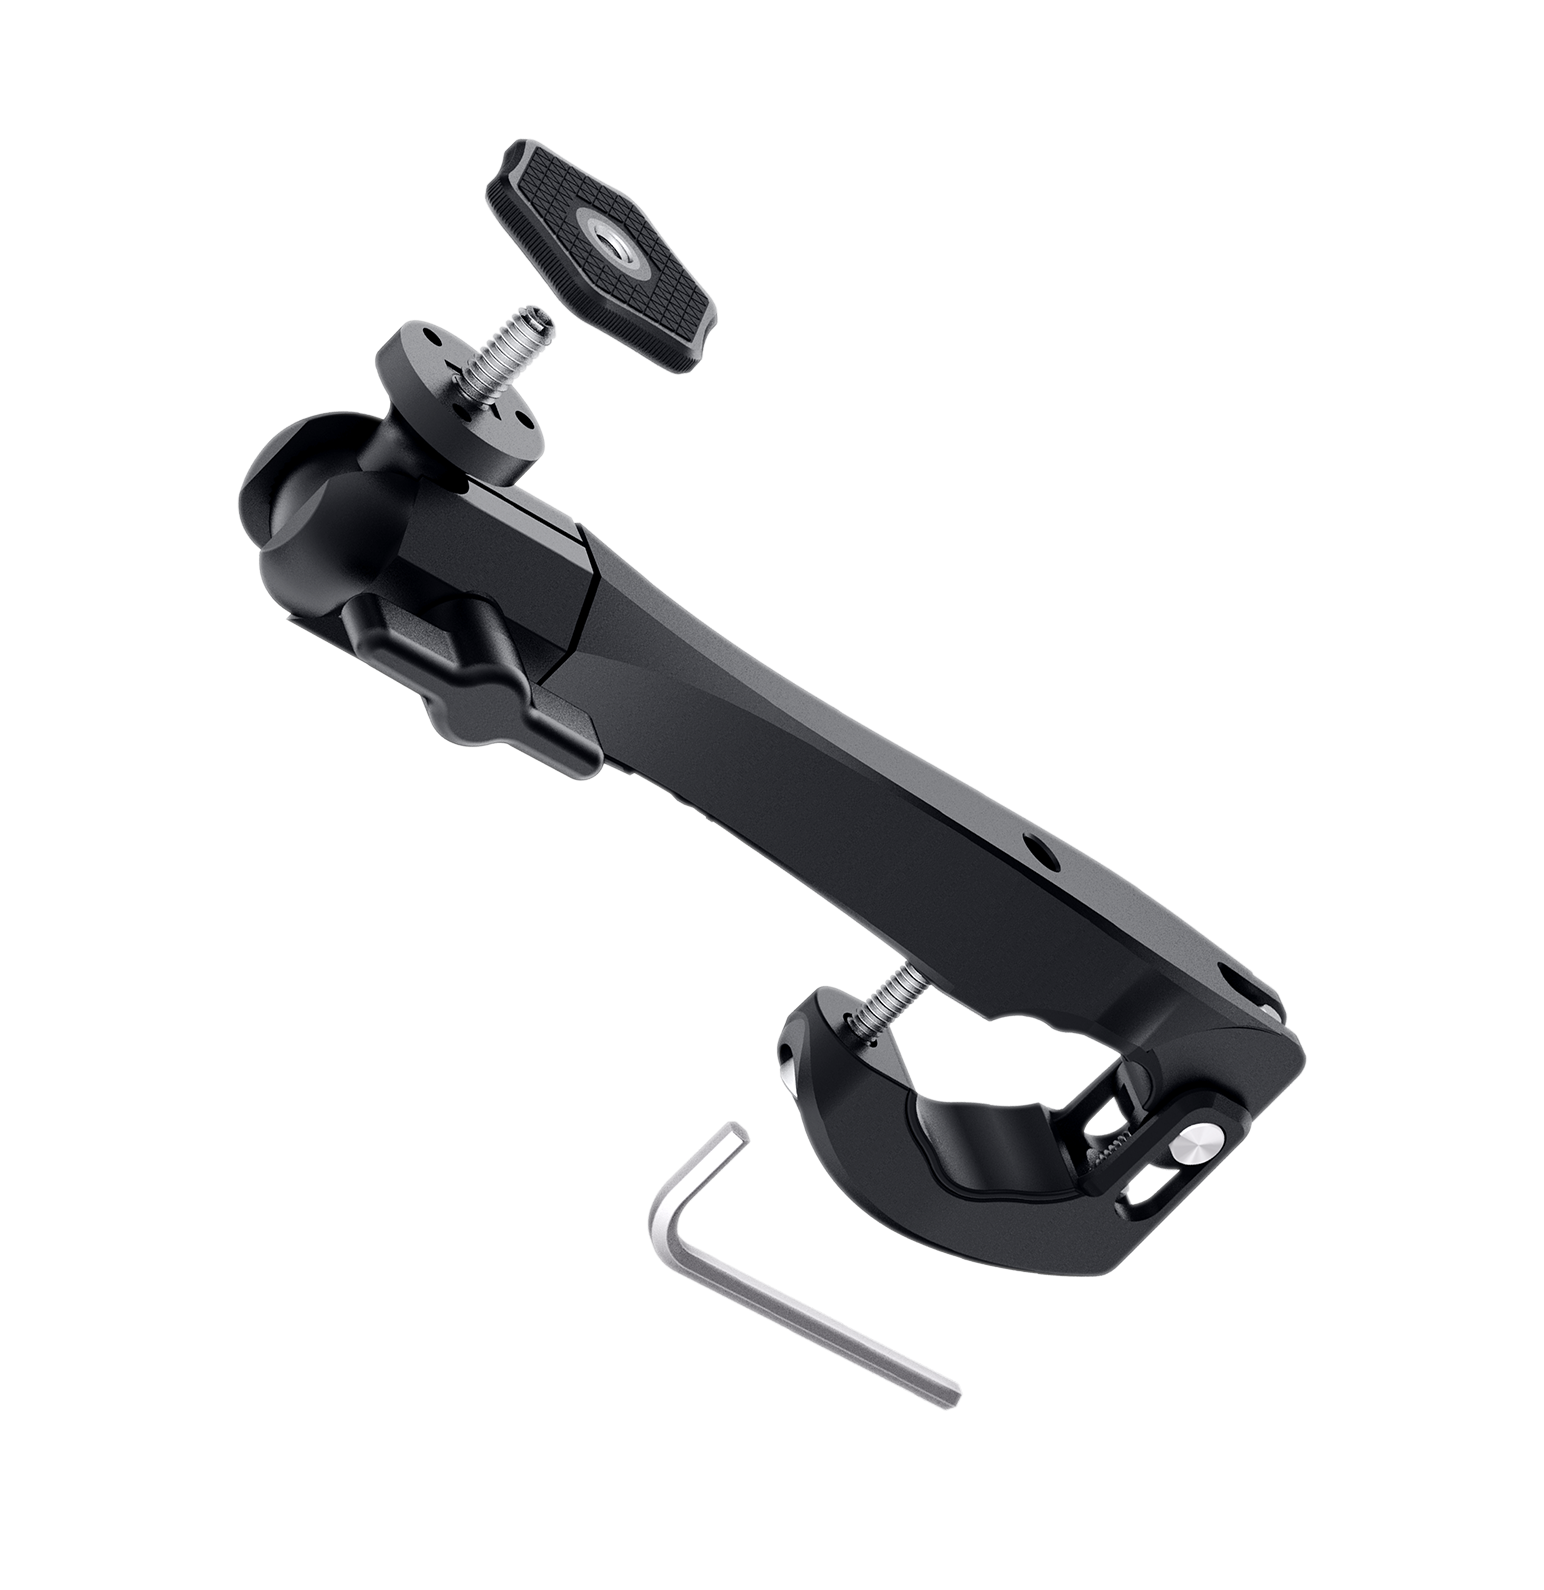 Rugged Handlebar Mount (¼-20)